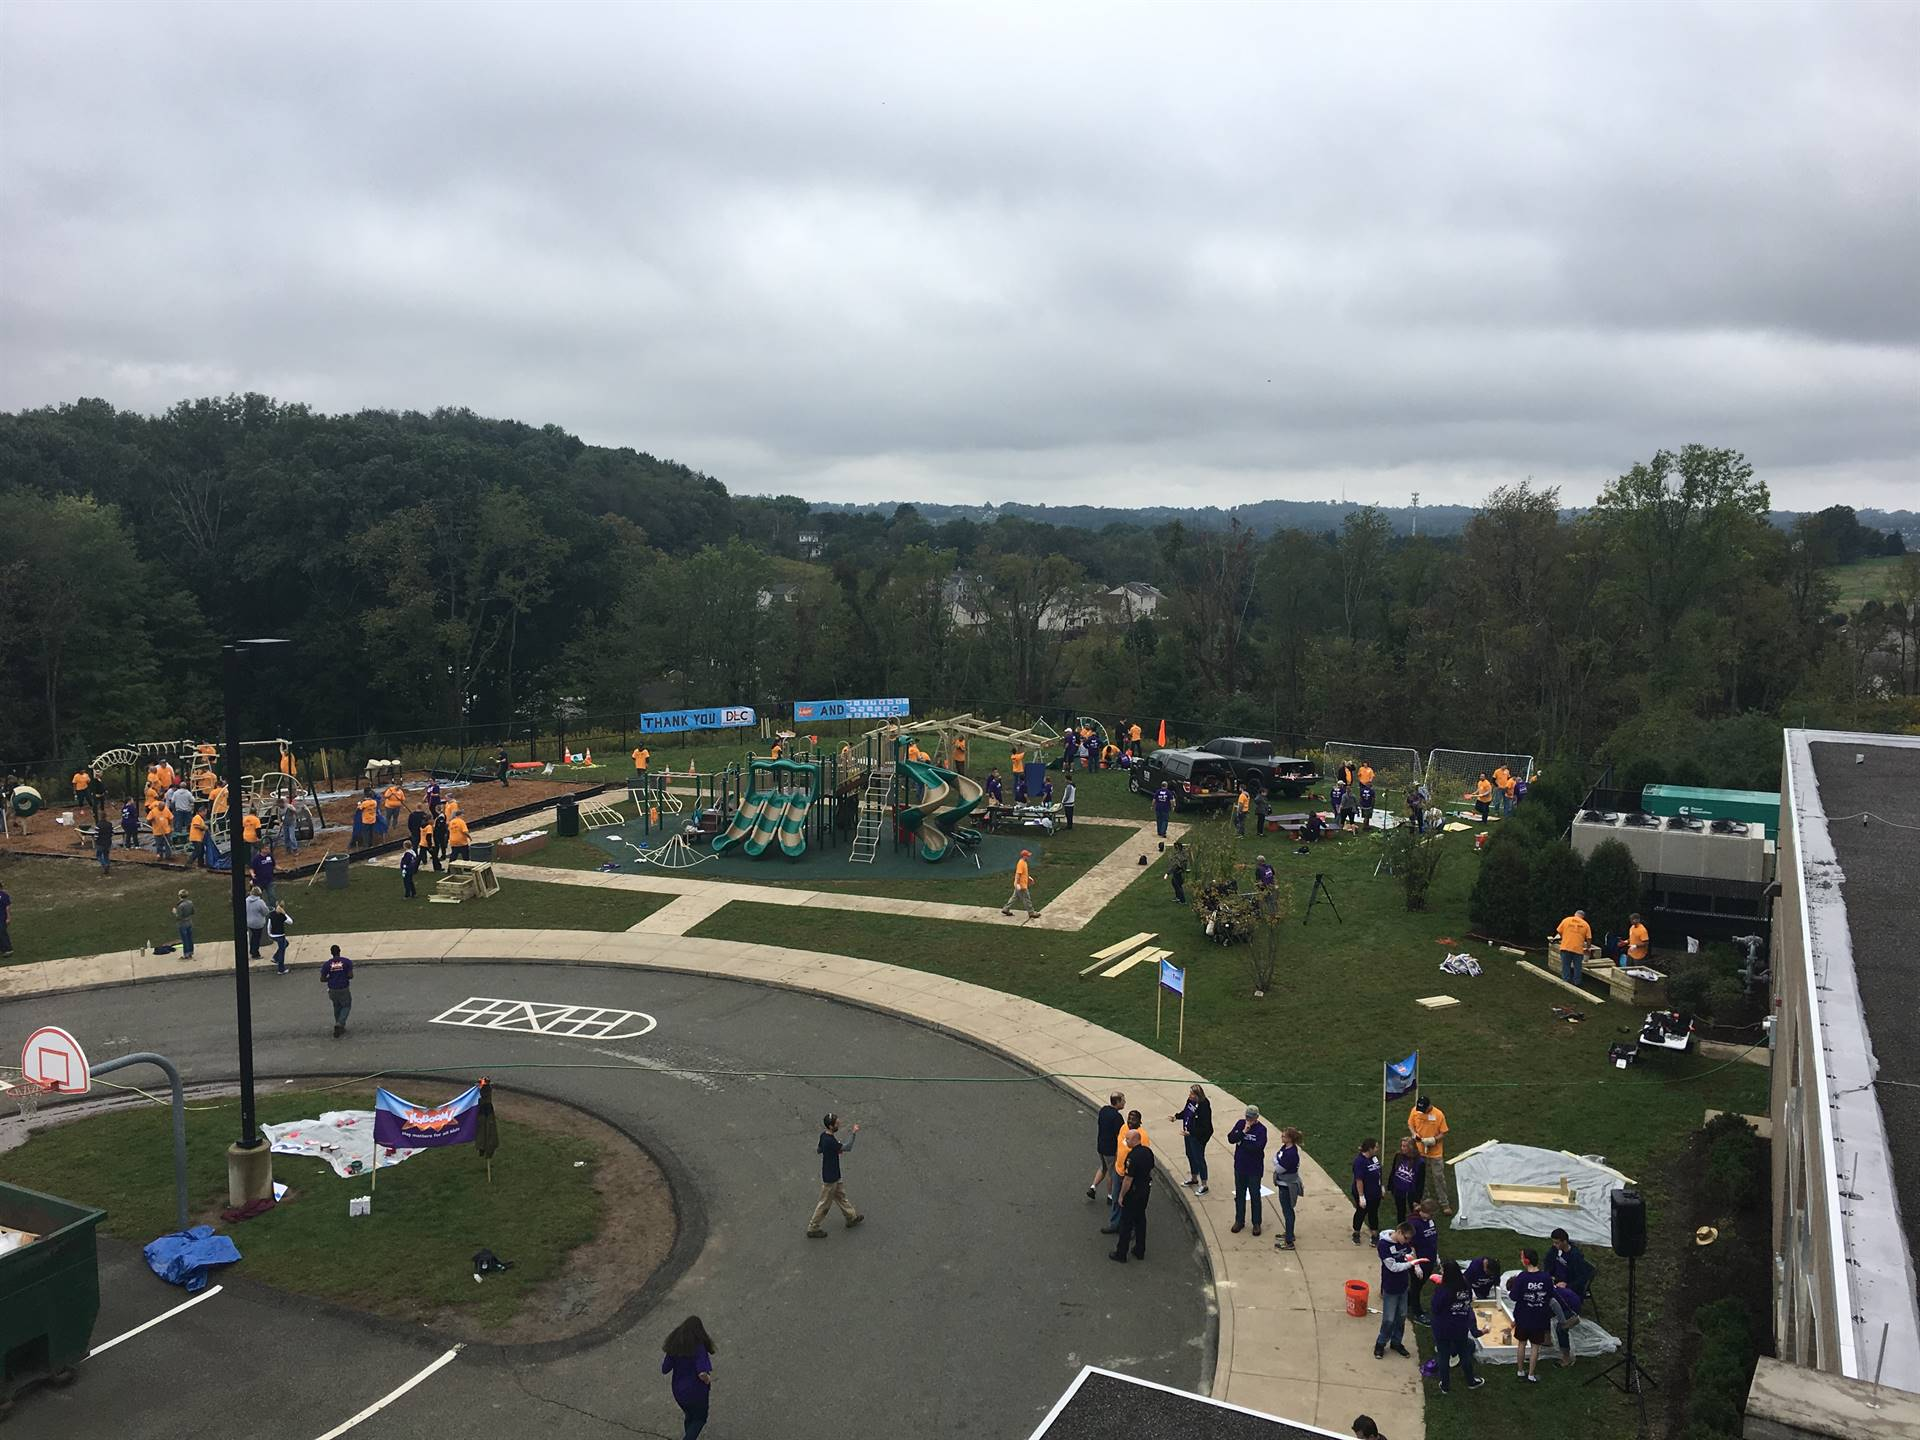 A view from above while the playground was being built